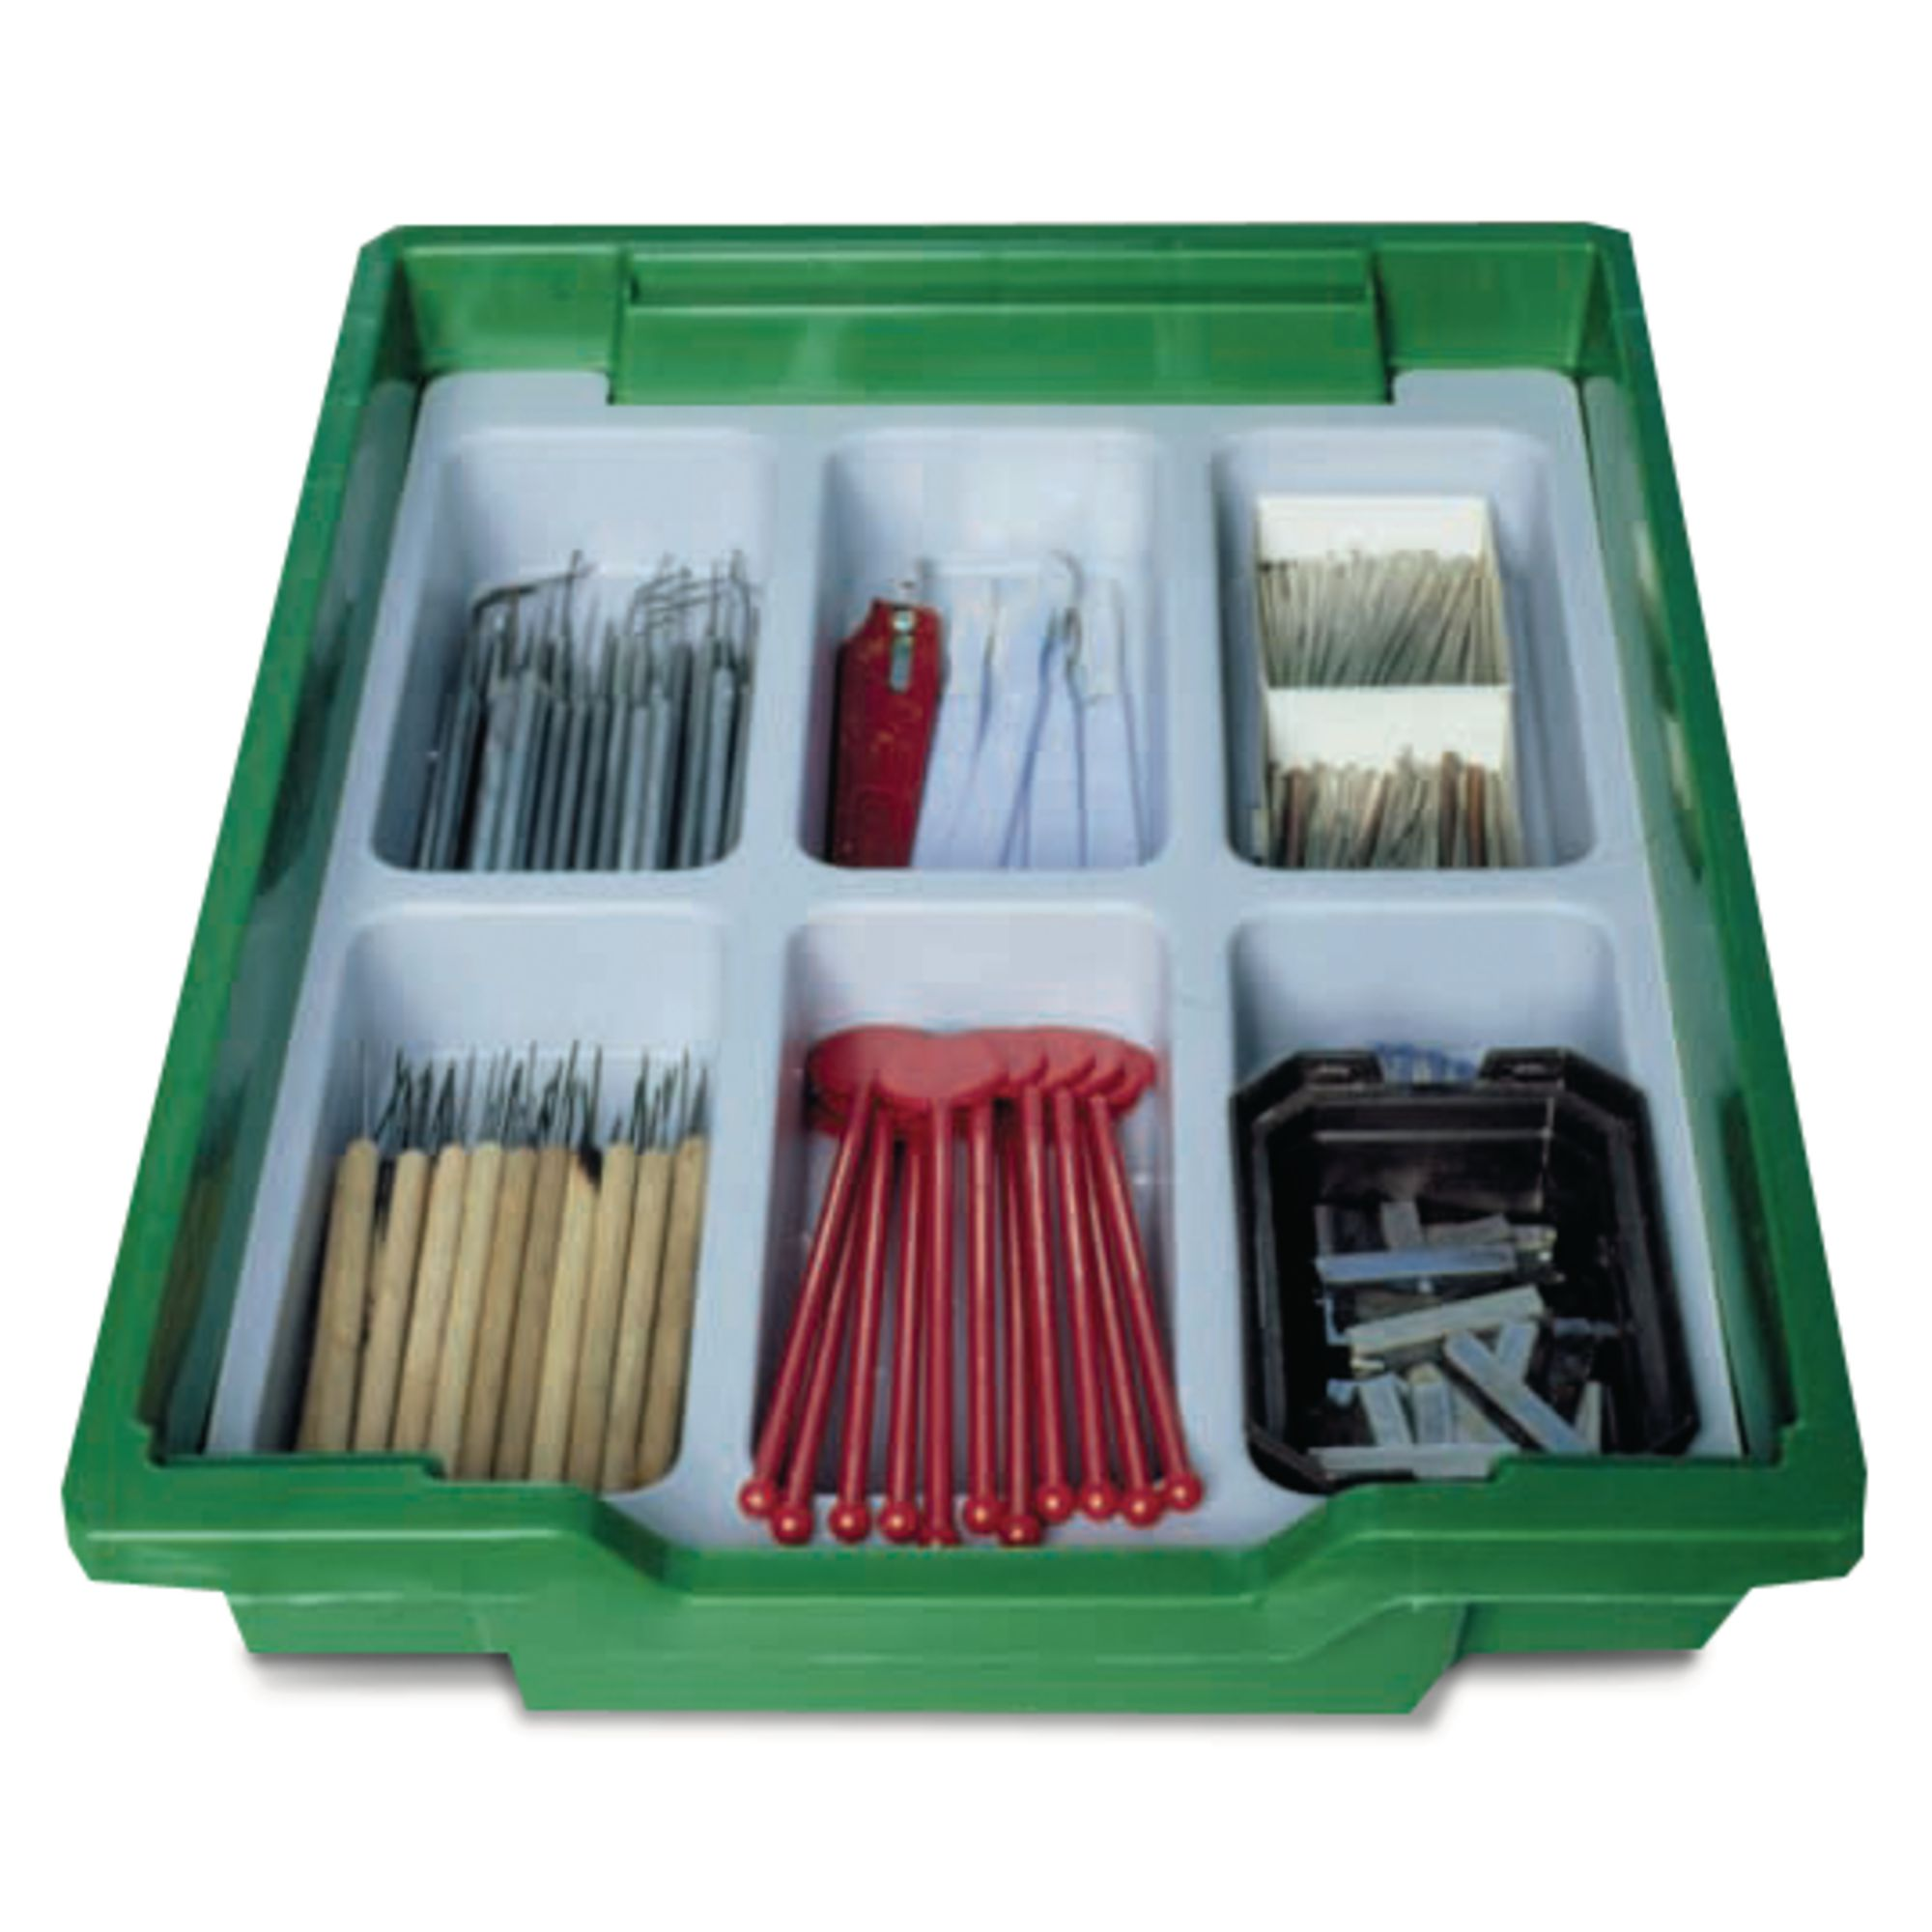 Gratnells Plastic Dividers for Shallow Trays 6